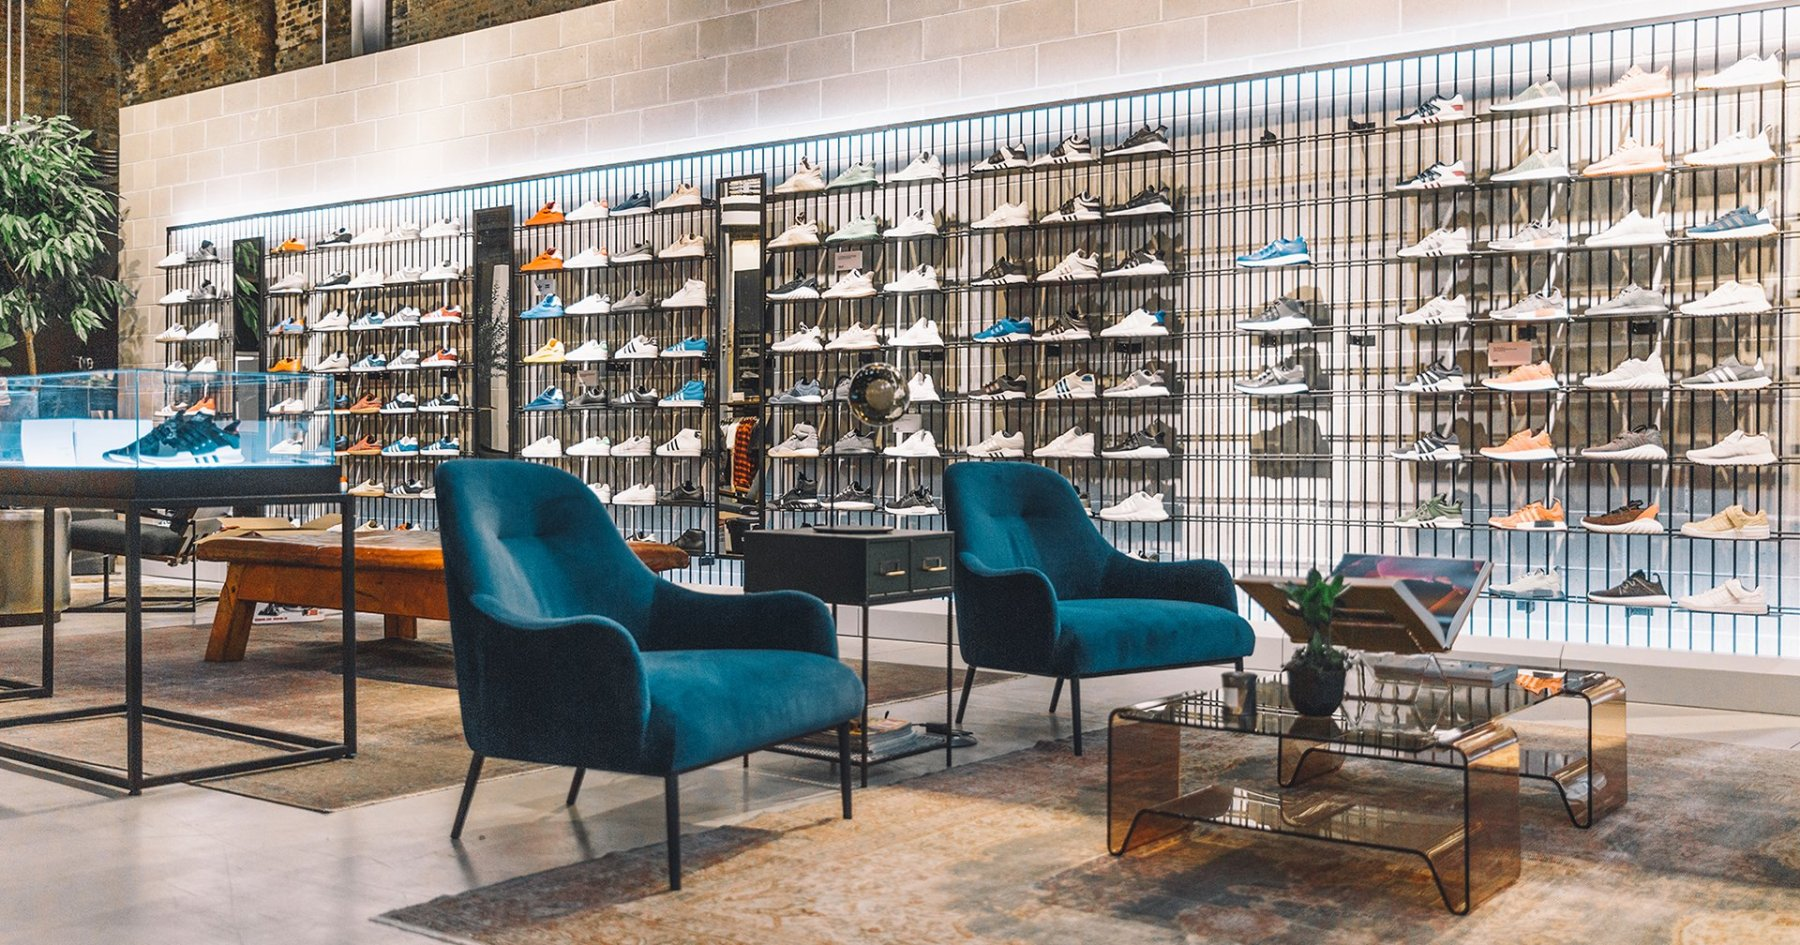 The World's Largest Adidas Originals Store Is Here